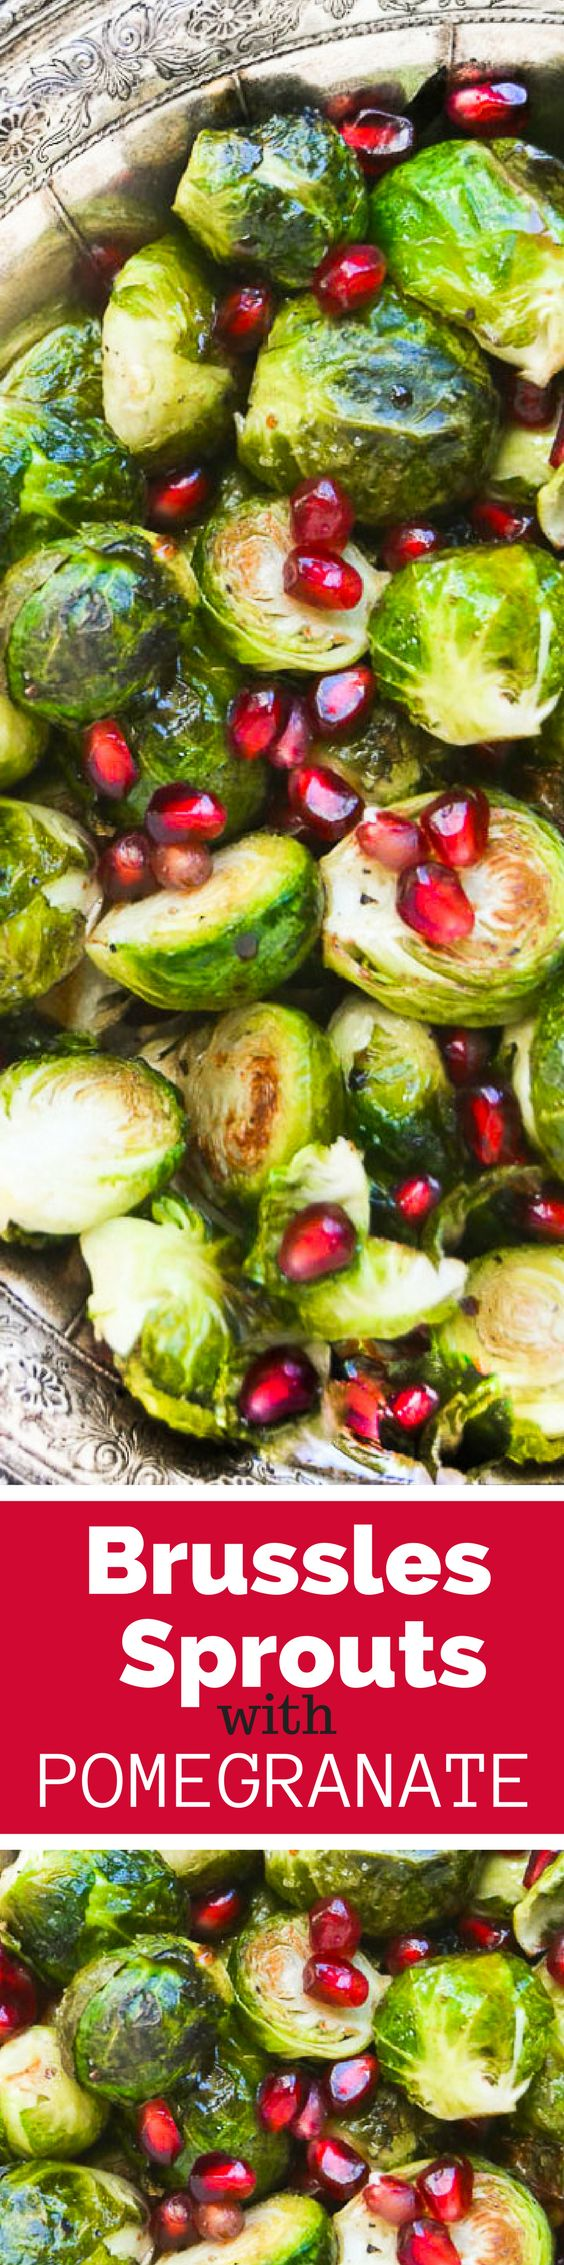 Roasted Brussels Sprouts with Pomegranate is a super easy fall and holiday side dish that dresses up any table and will make Brussels sprout fans out of everyone! ~ THEVIEWFROMGREATISLAND.COM